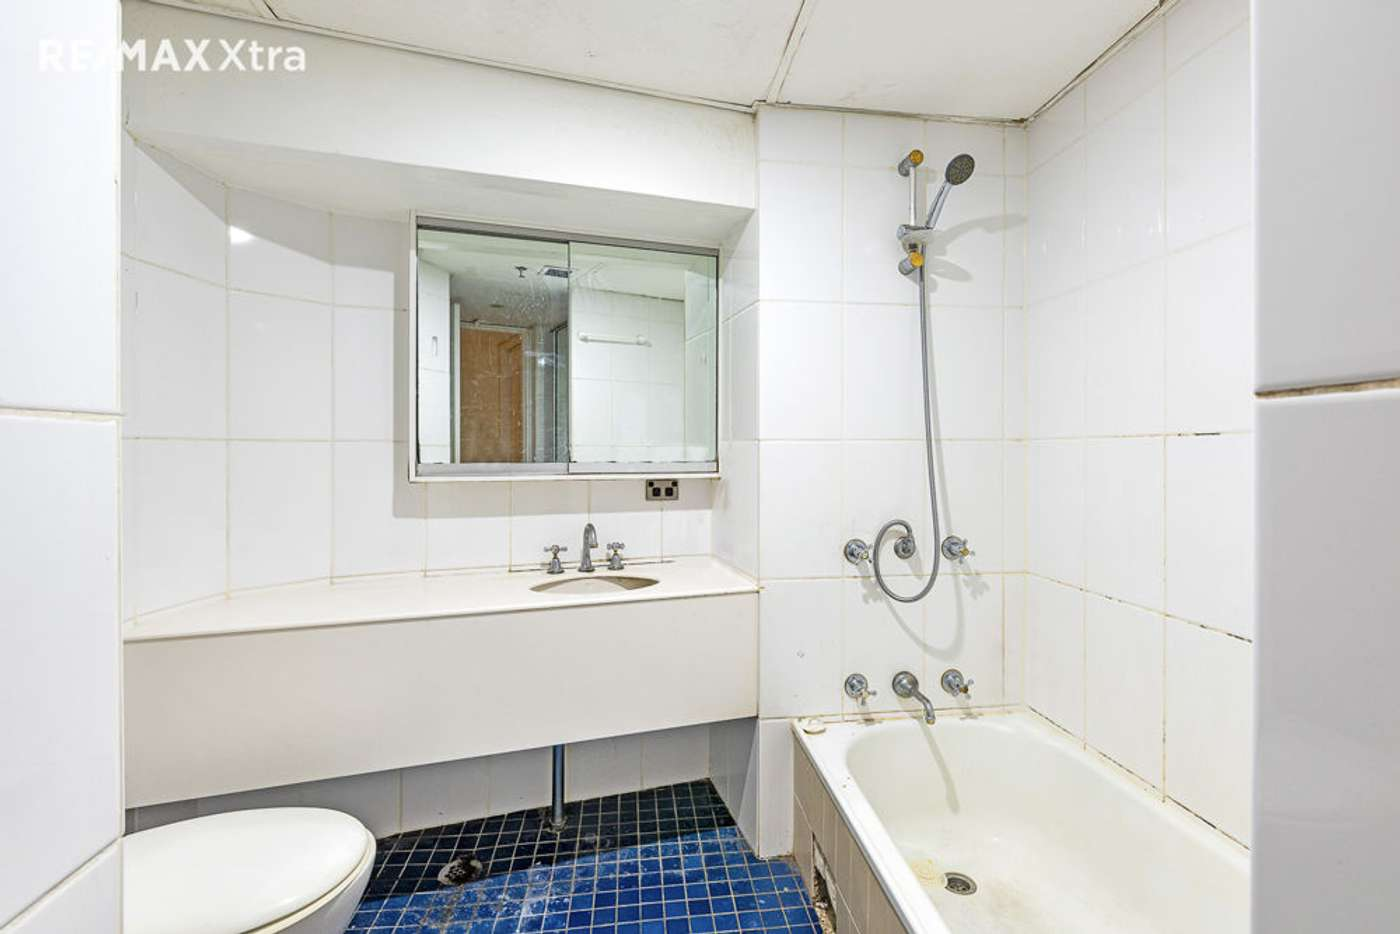 Fifth view of Homely apartment listing, 11/44 Bridge Street, Sydney NSW 2000